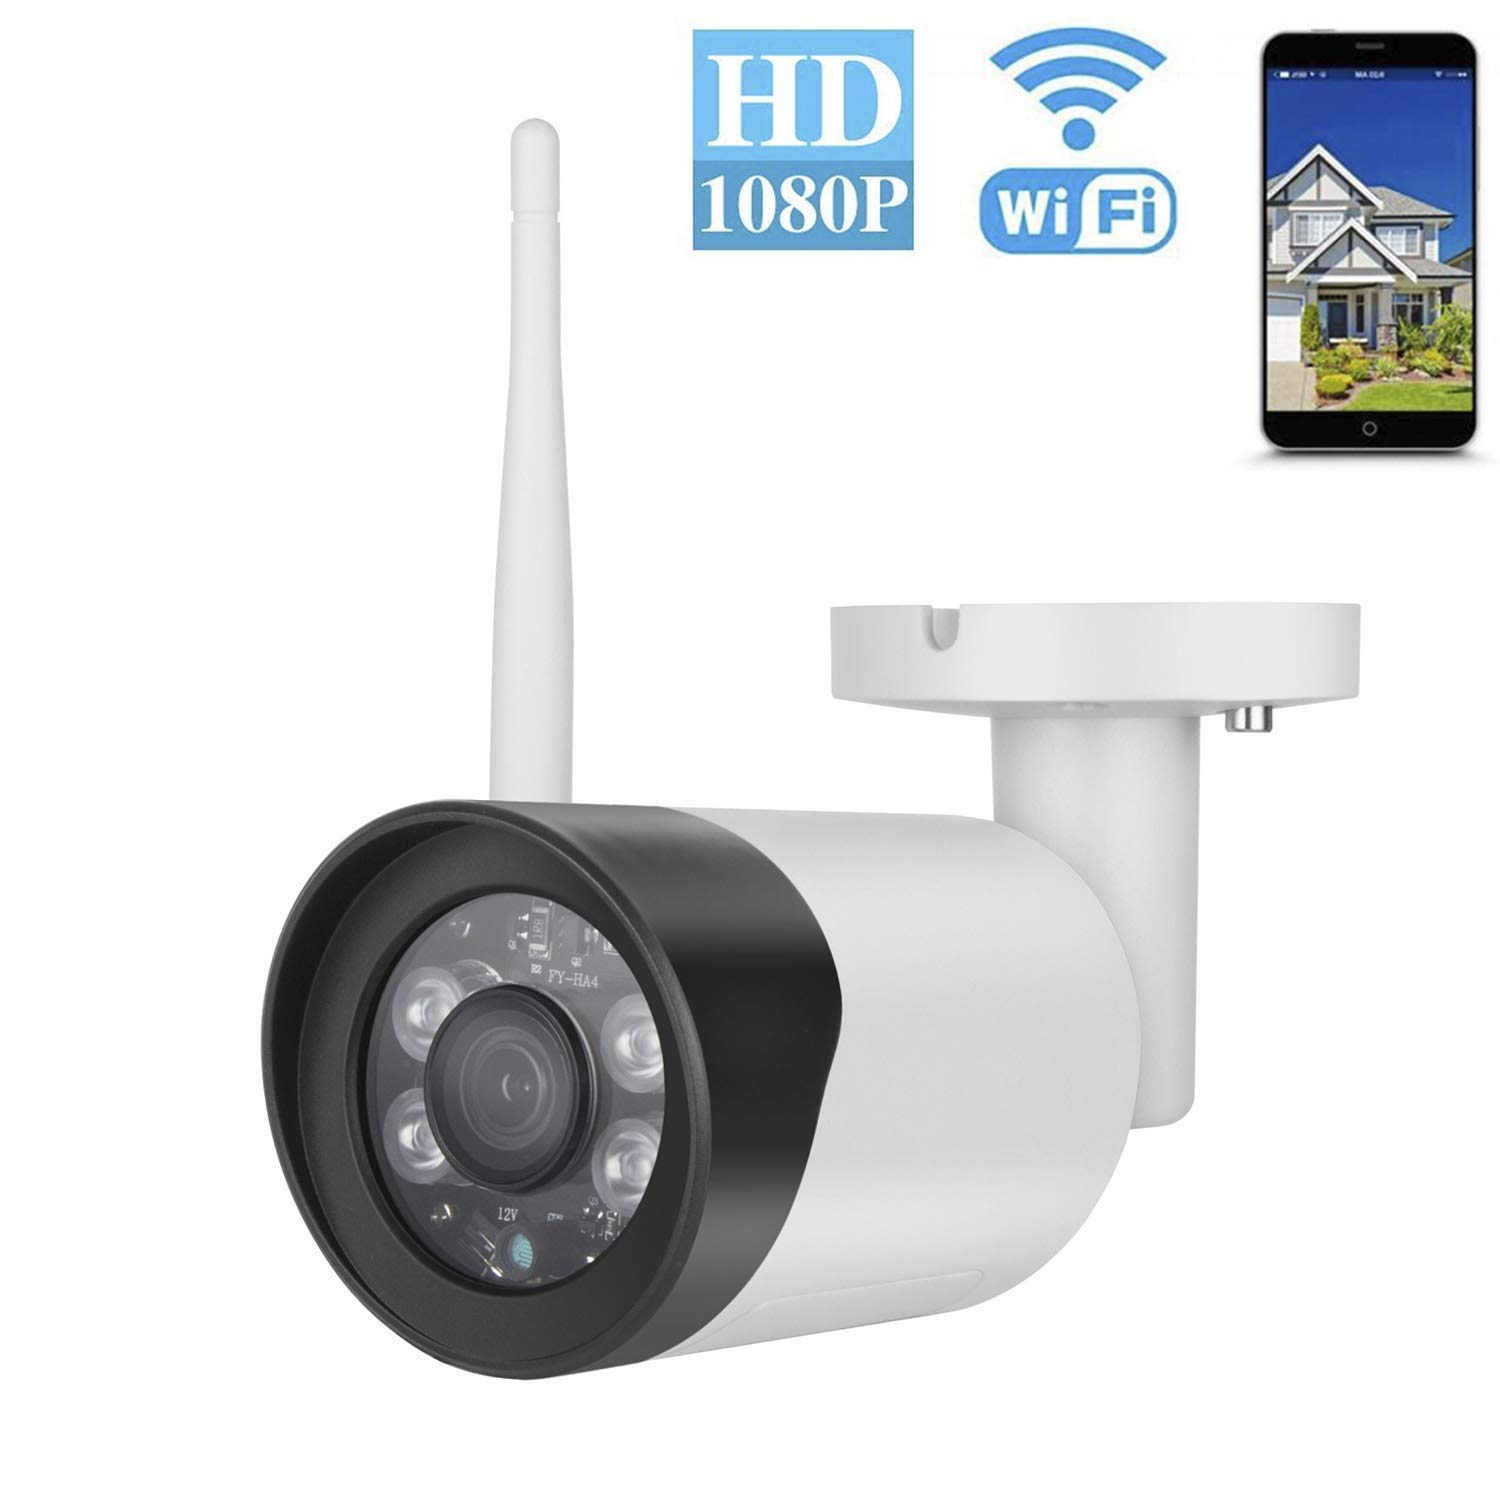 Outdoor Security Camera, 1080P WIFI Outdoor Camera with Two-Way Audio, IP66 Waterproof, Motion Detection, Night Vision, Remote Viewing Wireless IP Security Surveillance Cameras,SD Card Storage